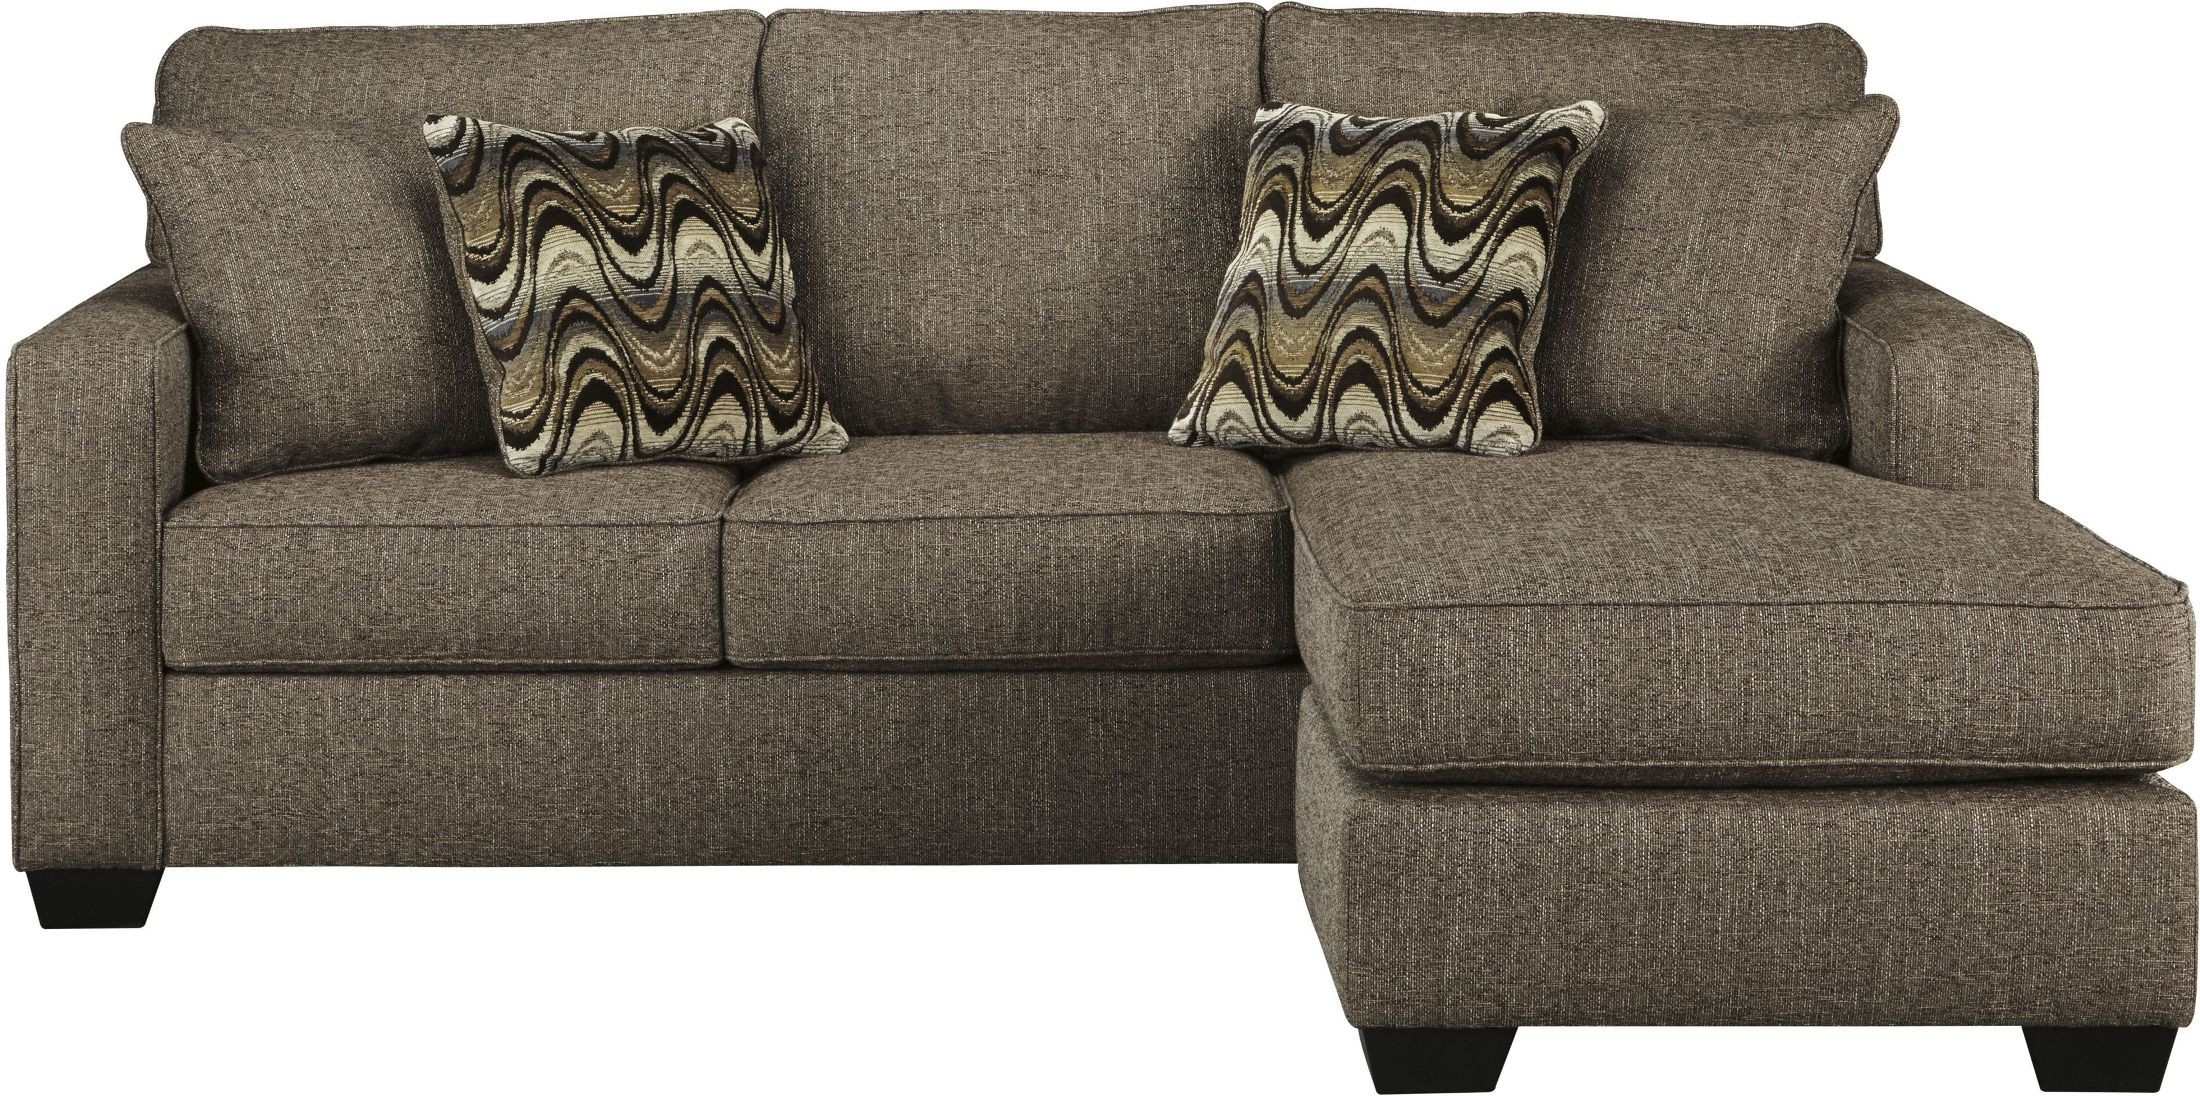 Ashley furniture catalog tanacra tweed sofa chaise from for Ashley north shore chaise